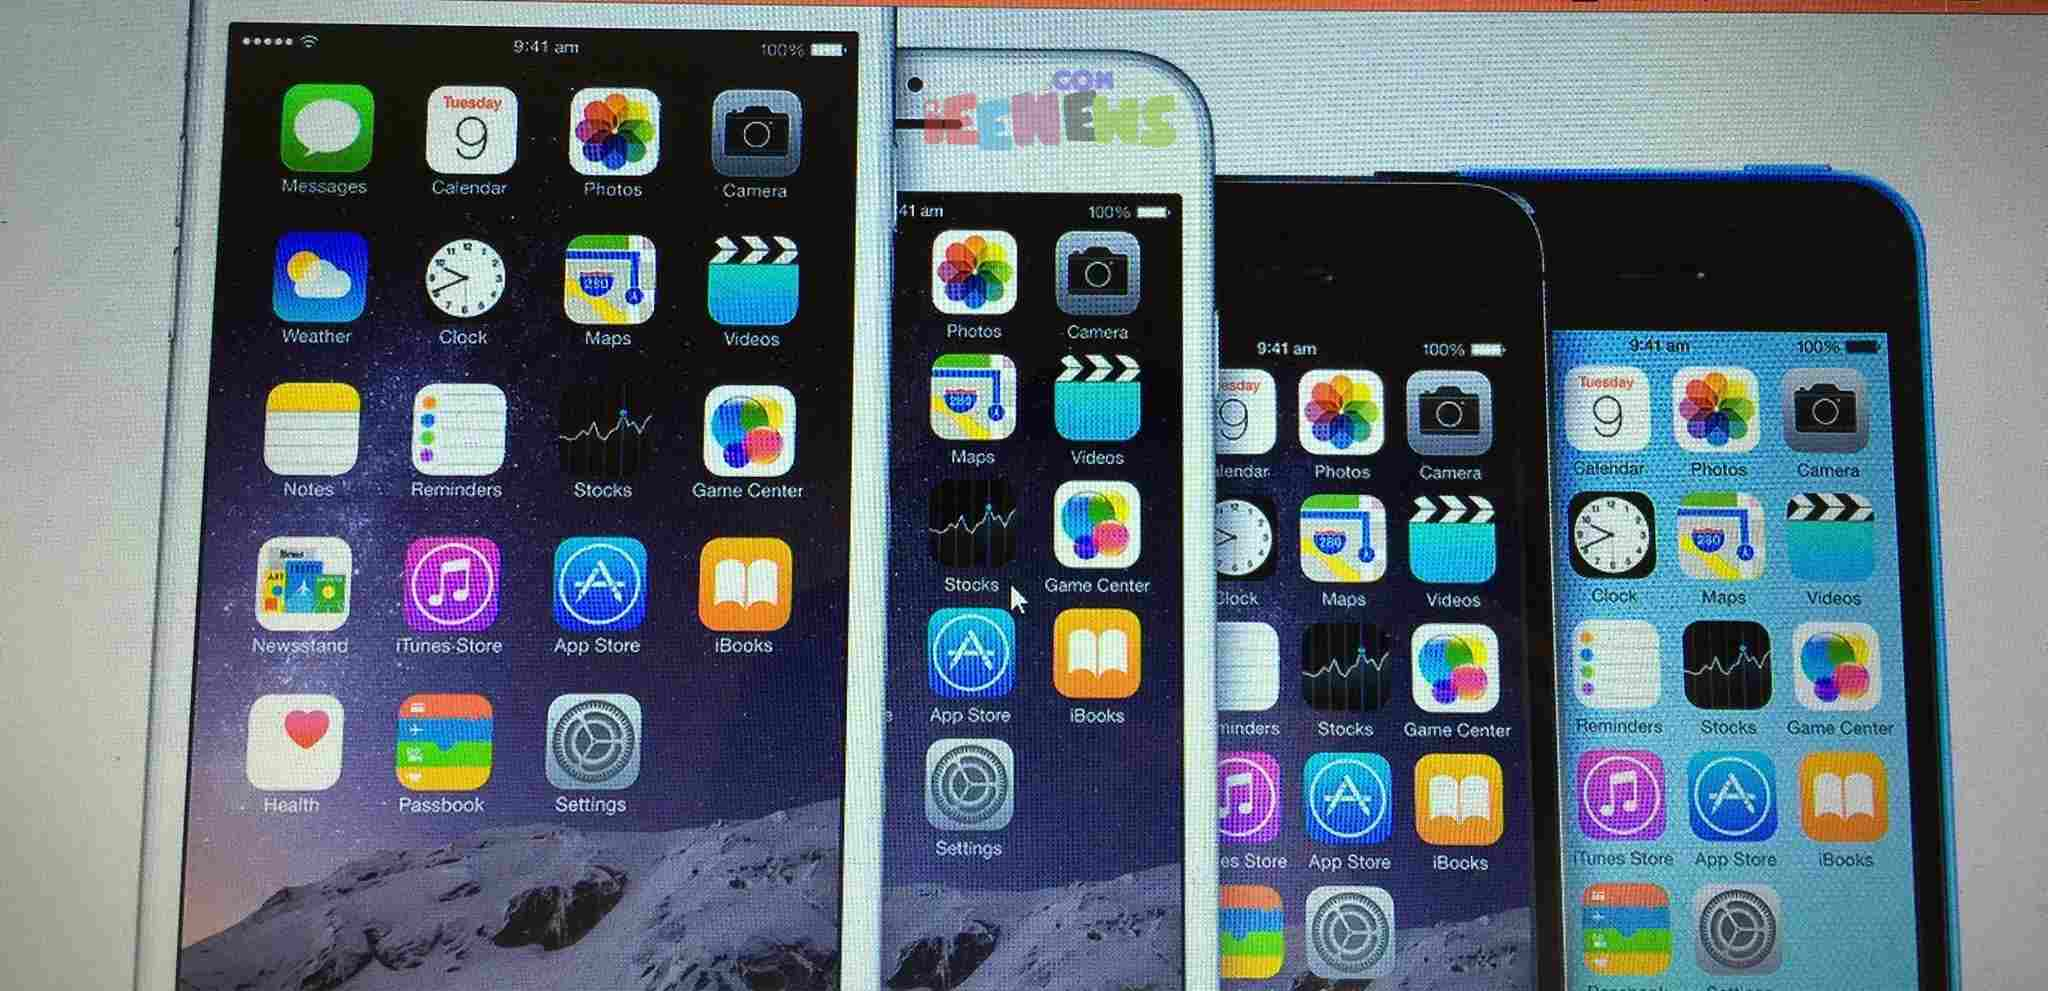 Apple iPhone 6 plus, 6, 5s, and 5c Comparision and specifications